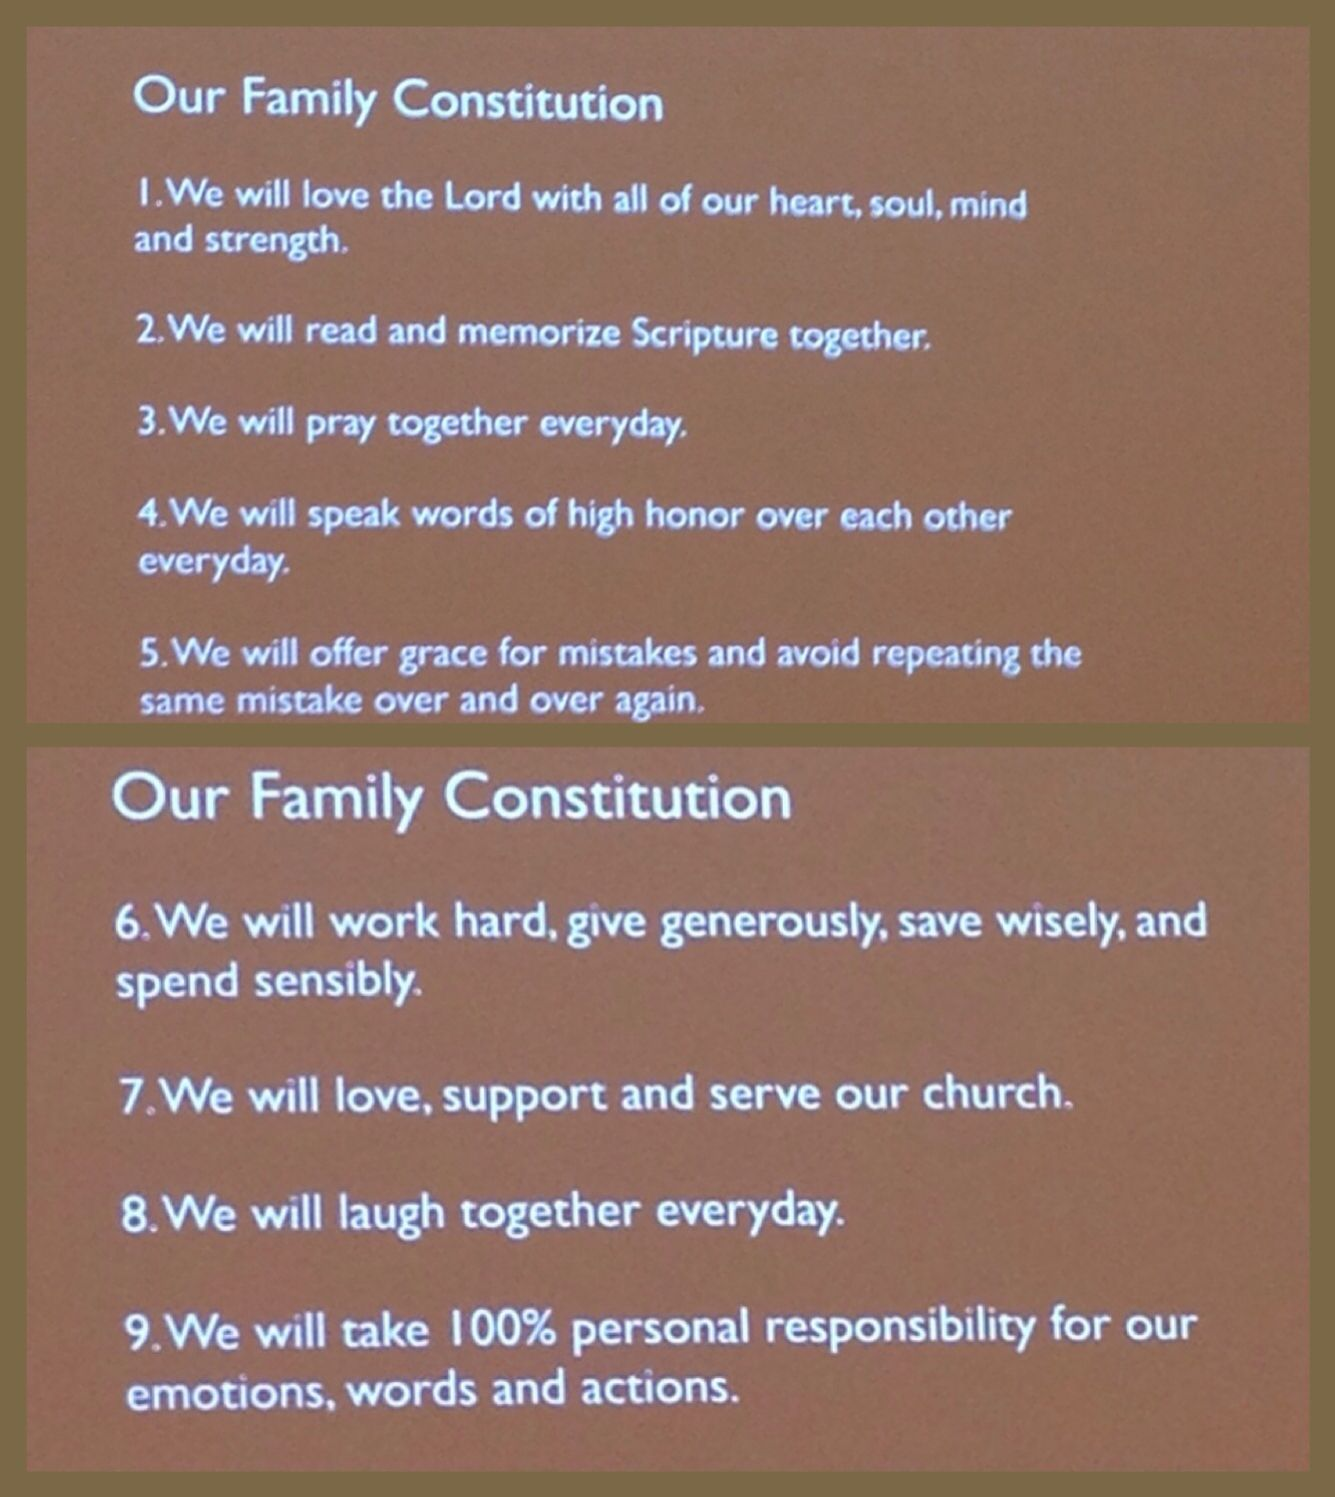 Family Constitution How To Memorize Things Constitution Ideas